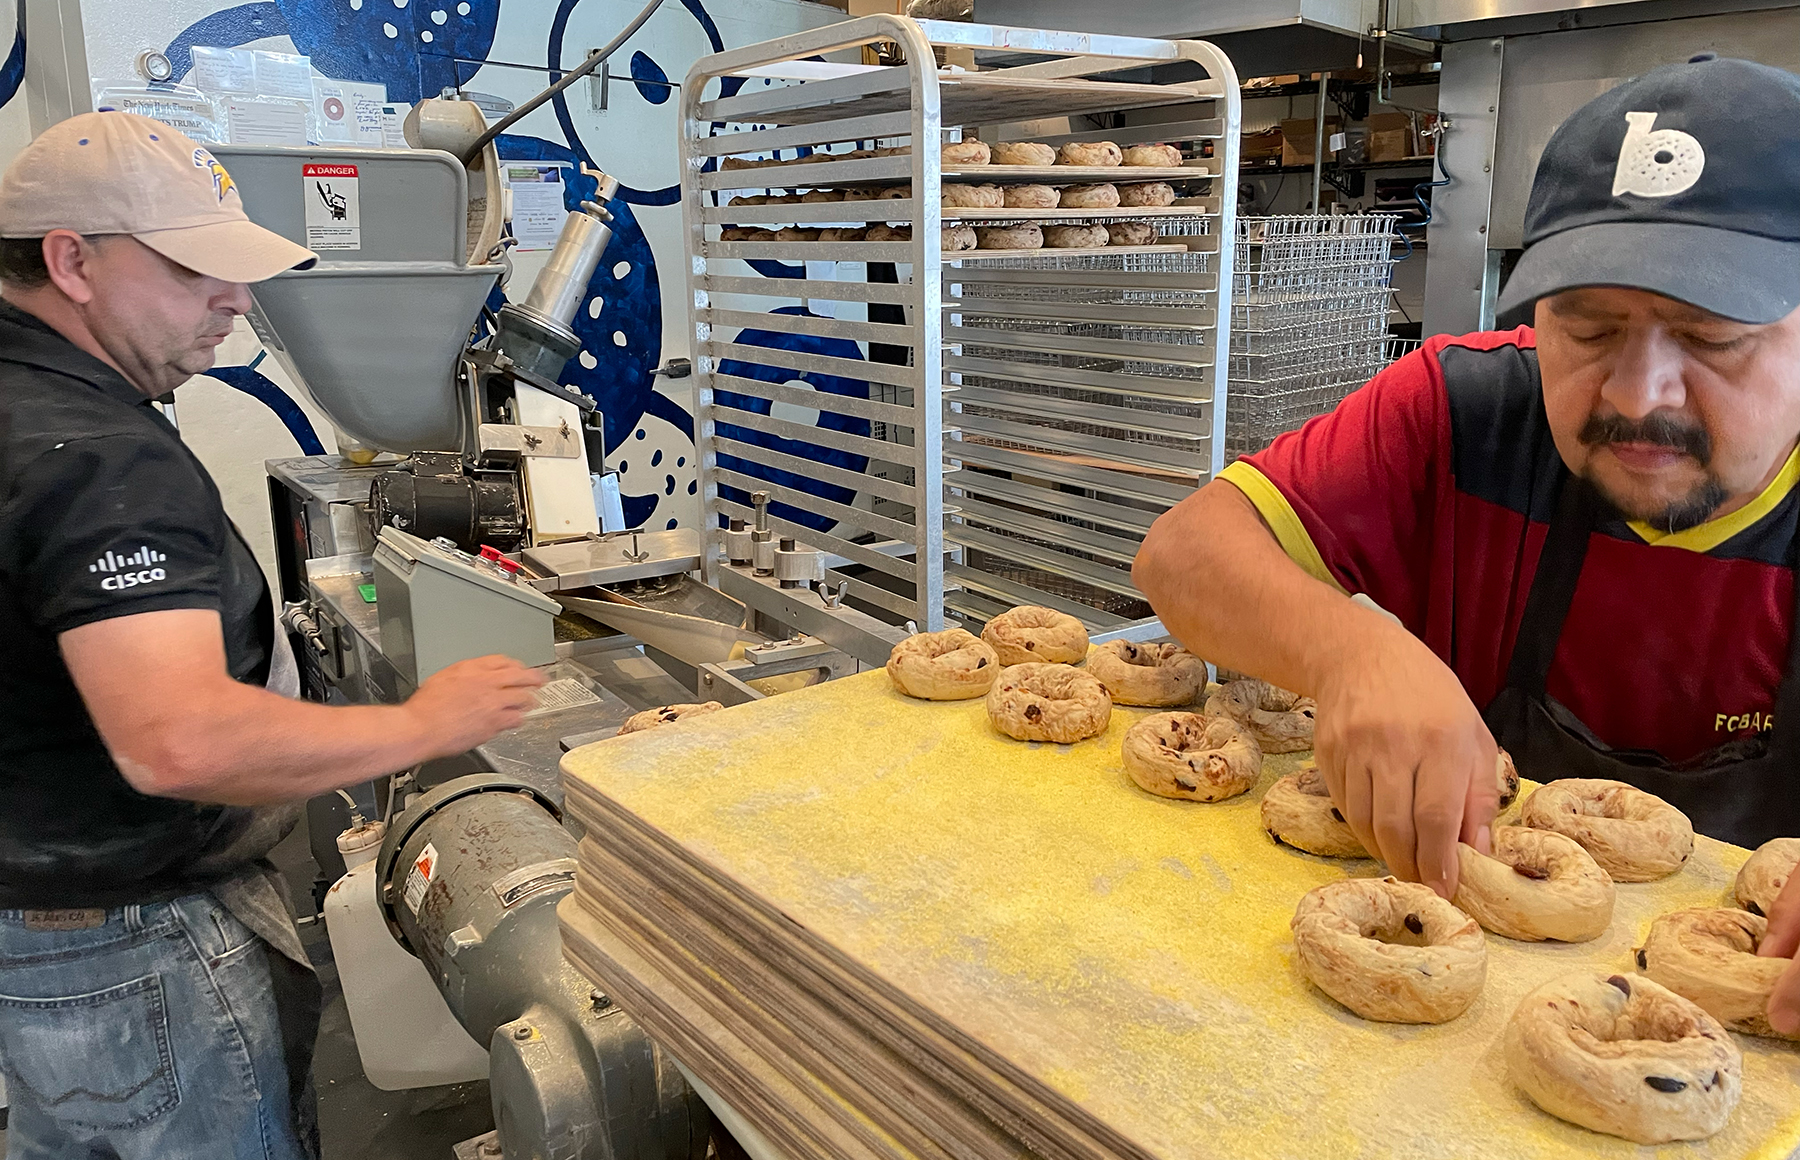 'A bagel empire': Boichik Bagels secures warehouse to expand in Bay Area